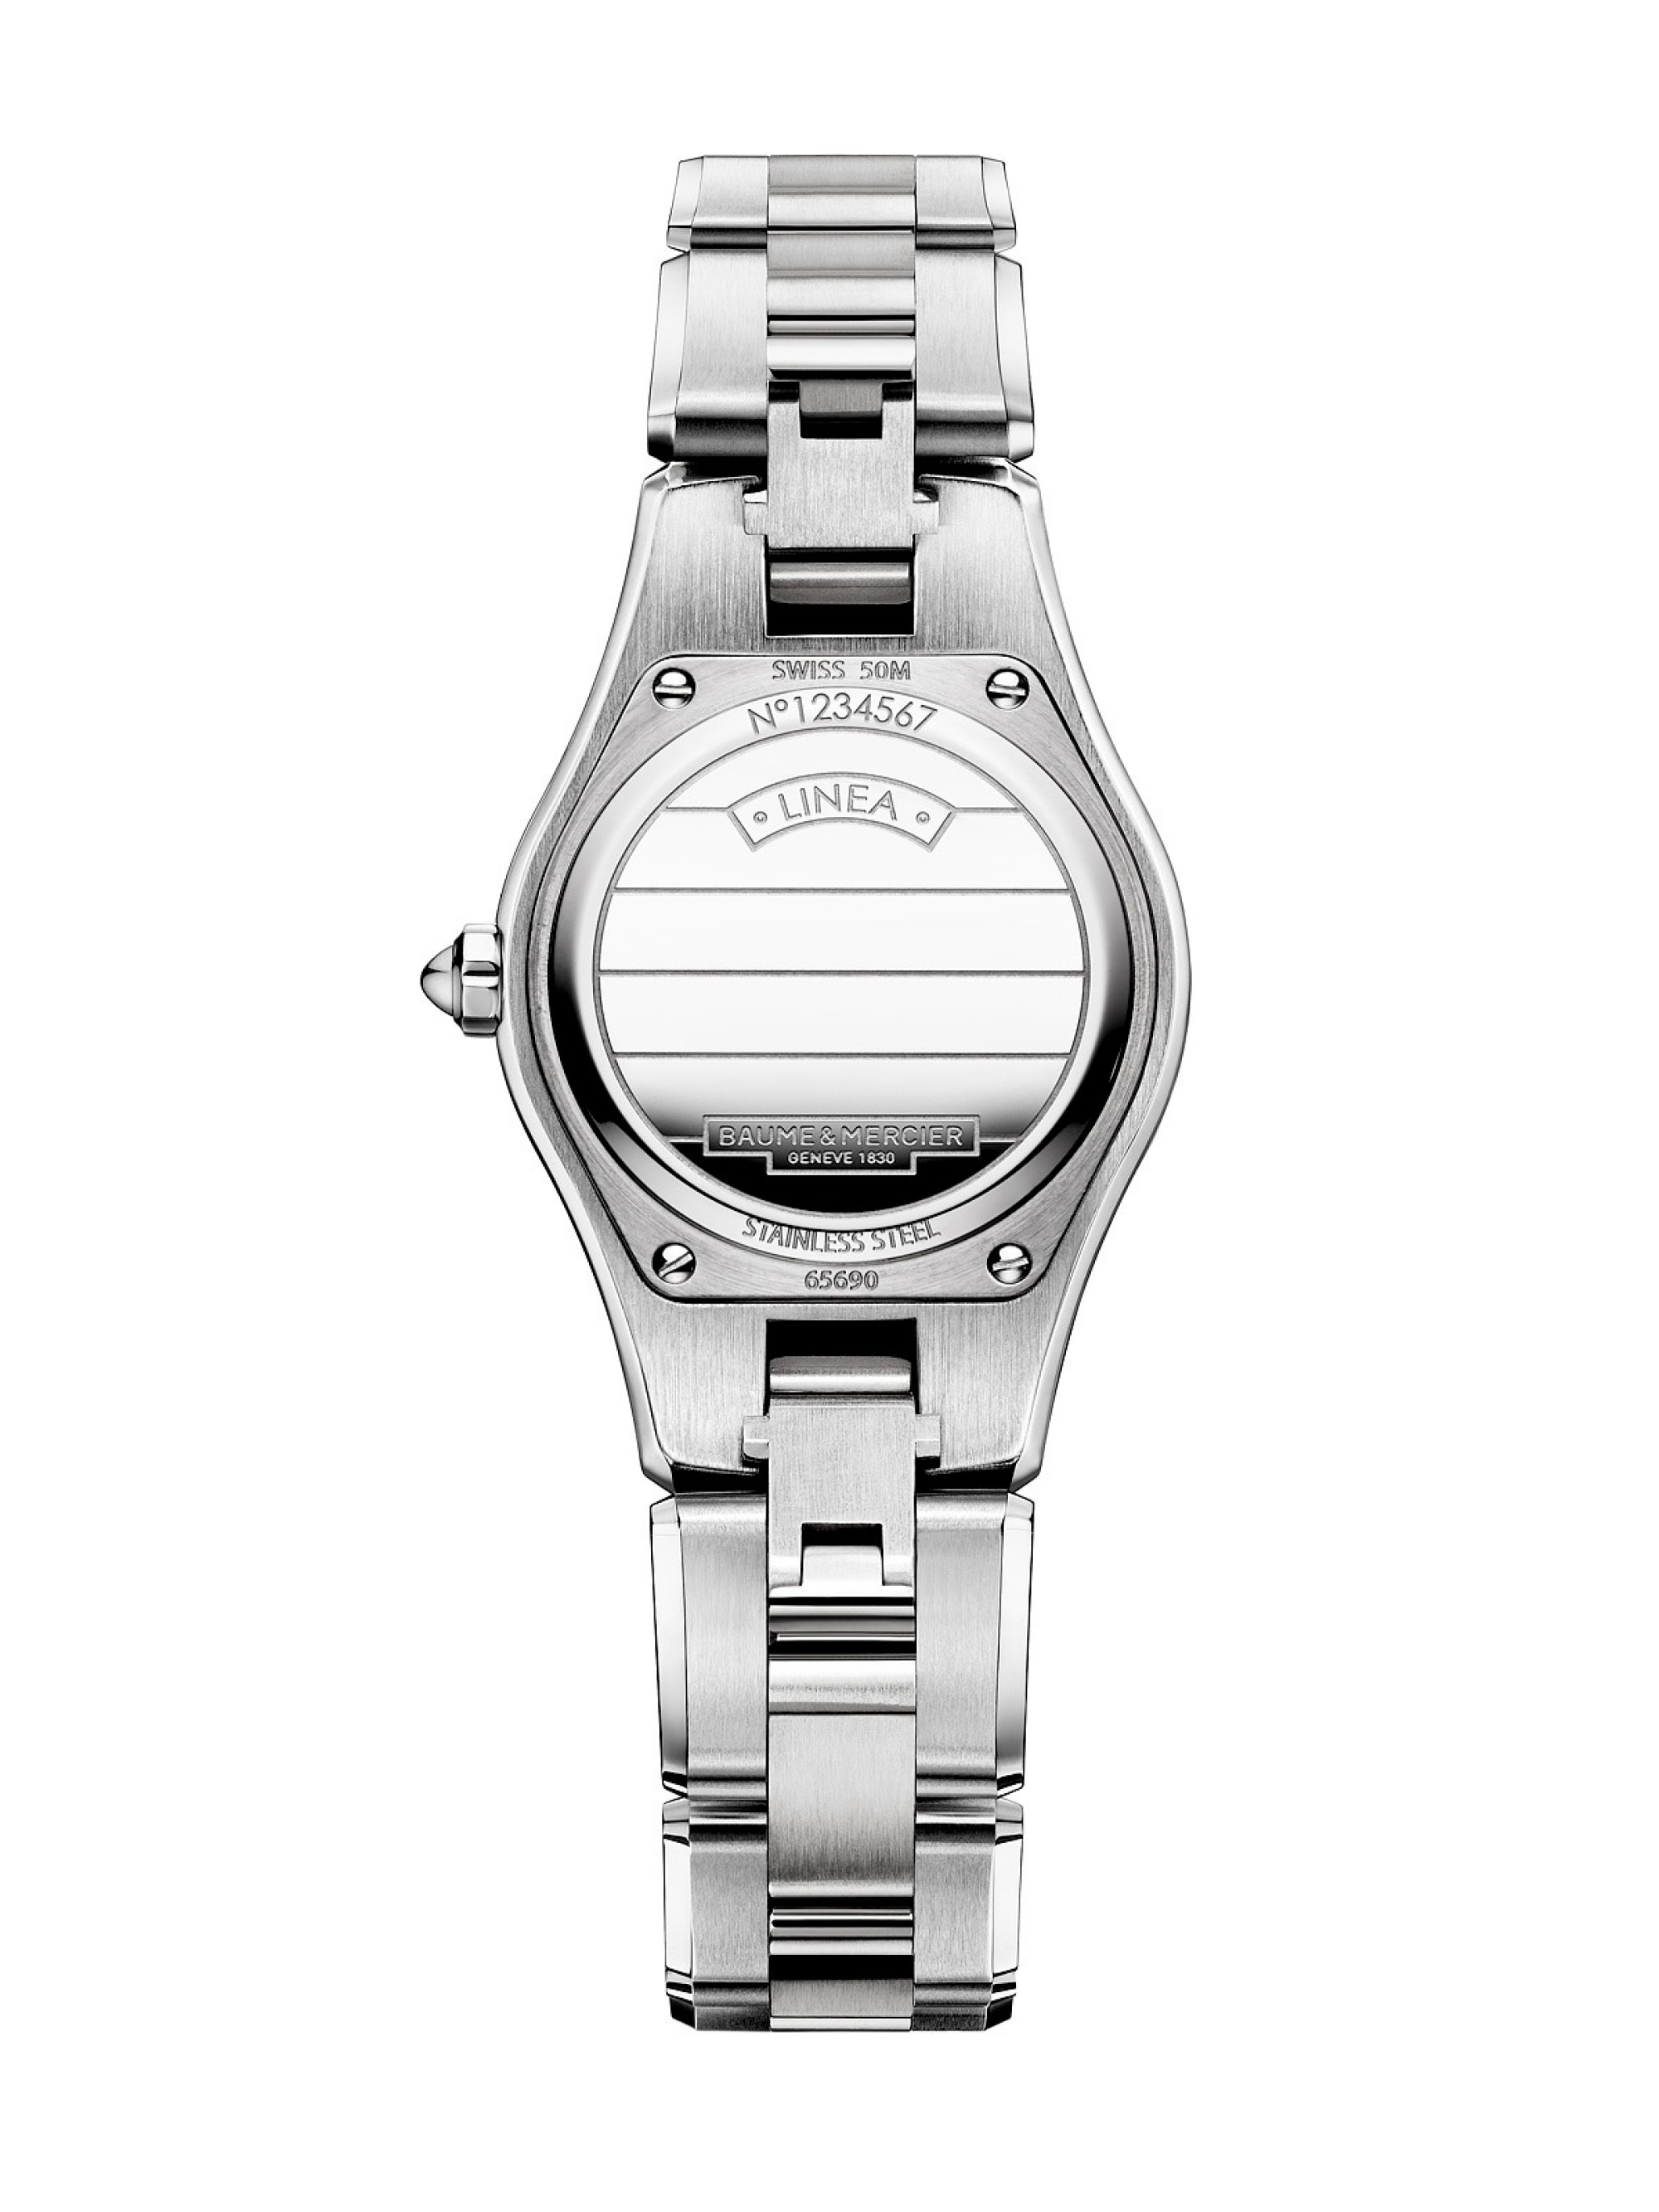 Linea 10010 Relógio para mulher | Baume & Mercier null null